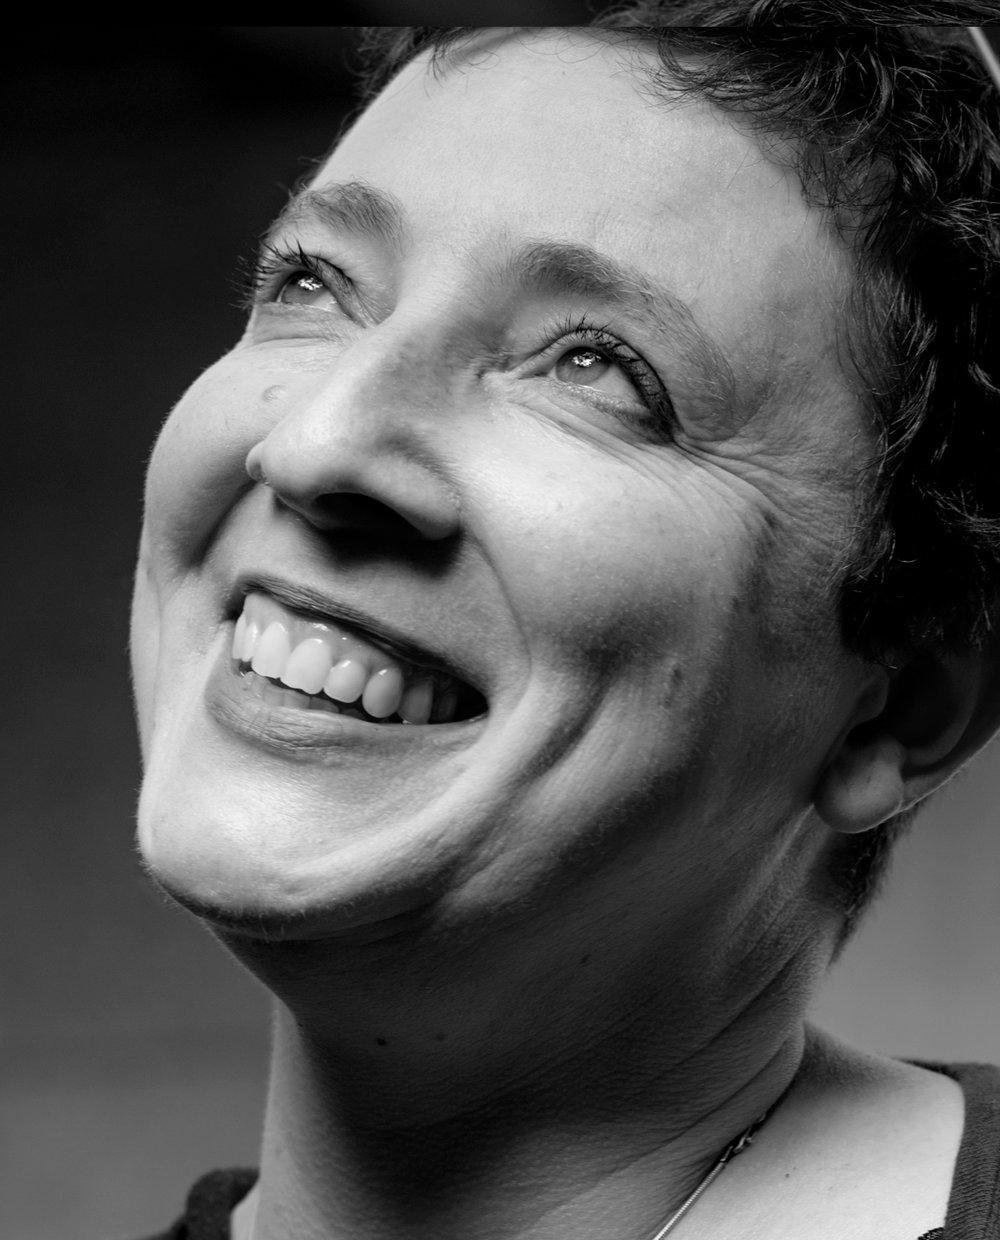 Tania Hershman , Resident Writer 2019  @taniahershman   Tania Hershman's third story collection,  Some Of Us Glow More Than Others  (Unthank Books) and debut poetry collection,  Terms & Conditions  (Nine Arches Press) were published in 2017. Tania is co-author of  Writing Short Stories: A Writers' & Artists' Companion  (Bloomsbury, 2014), curator of ShortStops ( www.shortstops.info ) and has a PhD in creative writing inspired by particle physics.  www.taniahershman.com   She won the 2018  Synaesthesia  Flash Fiction Contest and, through that, became our Resident Writer for 2019 – an entirely new position for us. So this year, look out for her stories and writing and learn from a master of flash fiction.